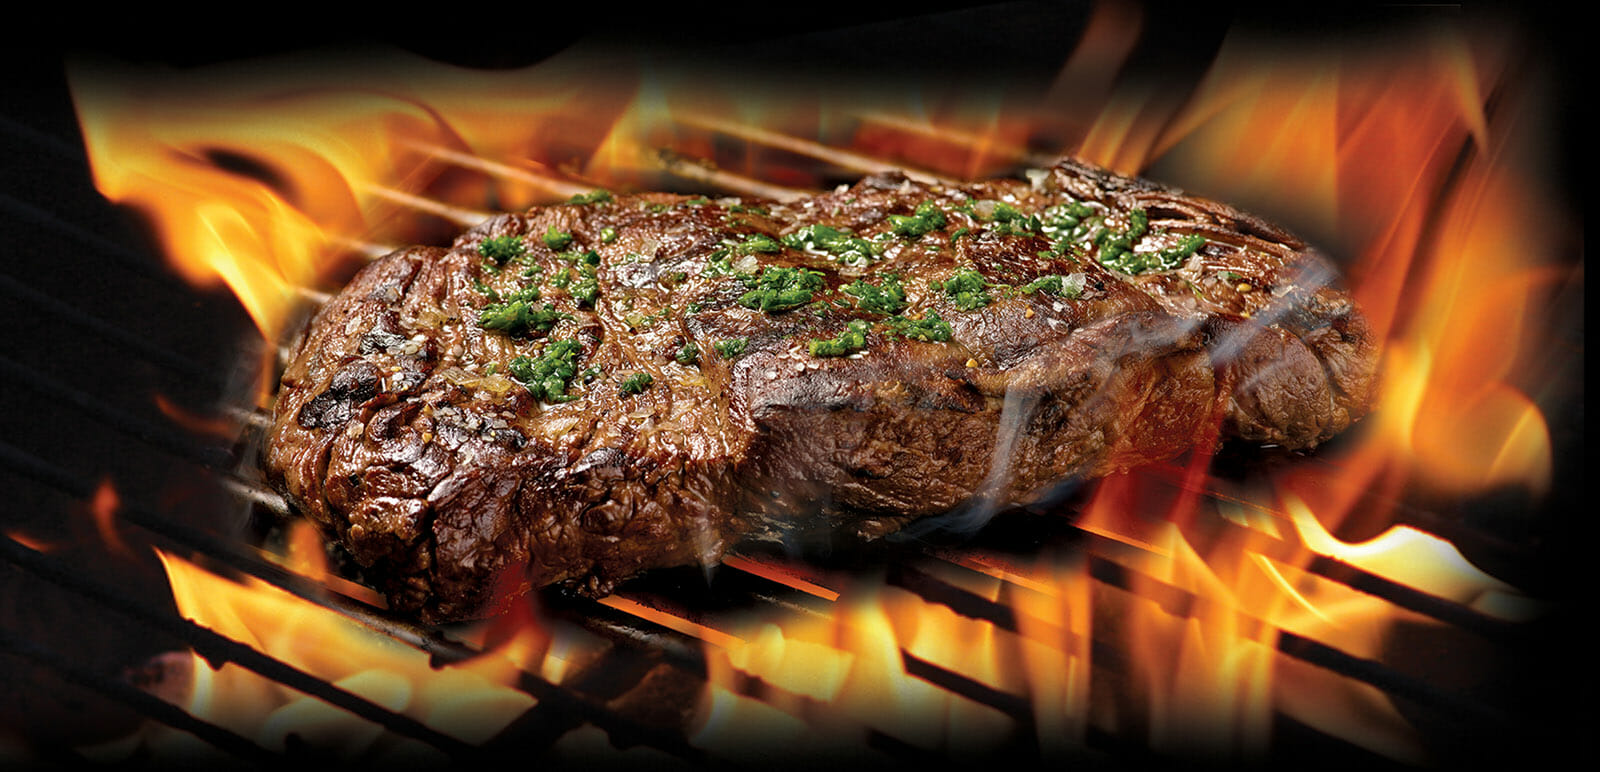 home_bg_churrasco-steak